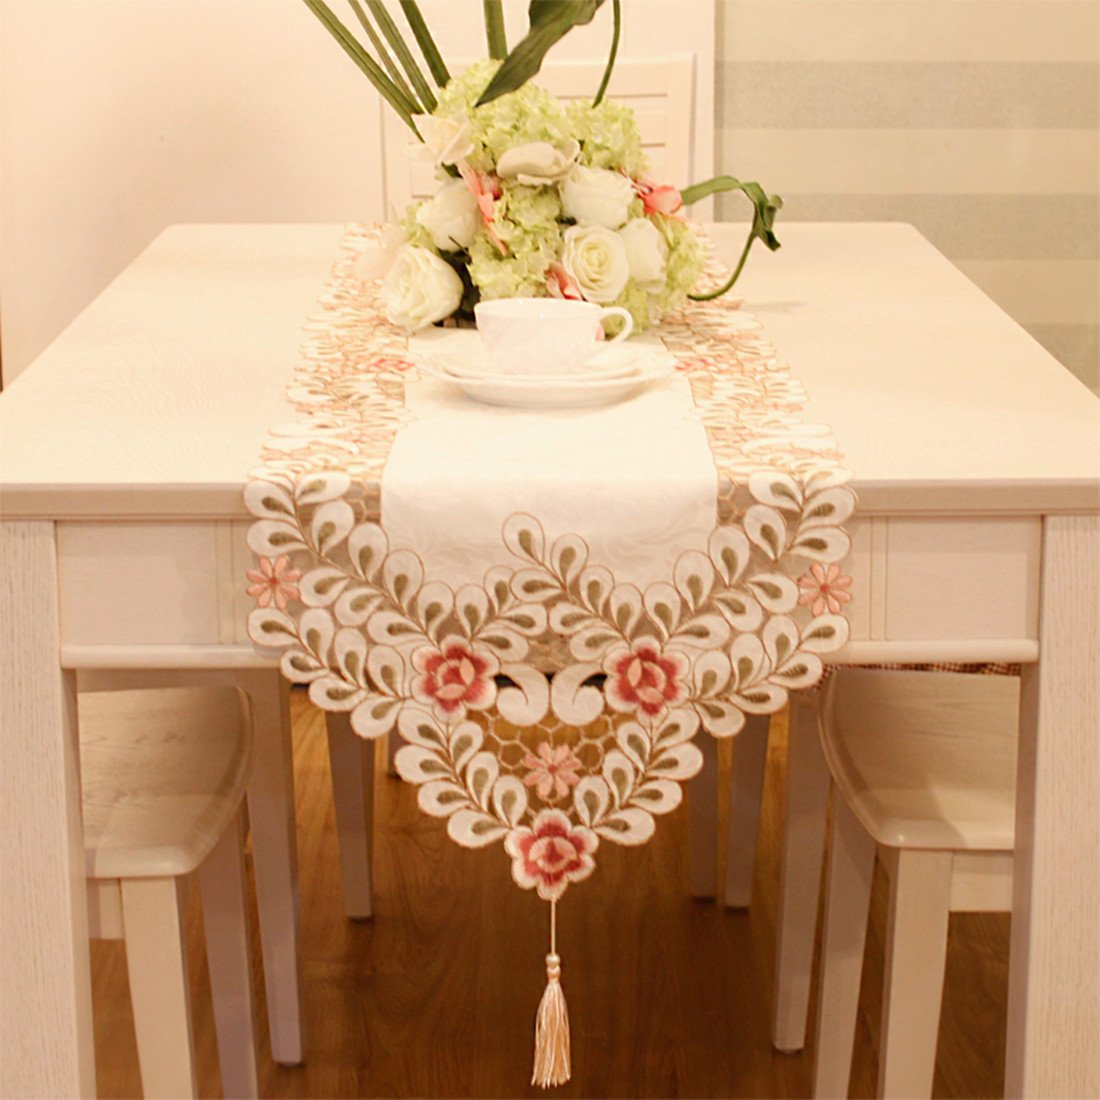 Pink flower embroidered hemstitch easter table runner tapestry 84 inch approx by JH table runner (Image #2)